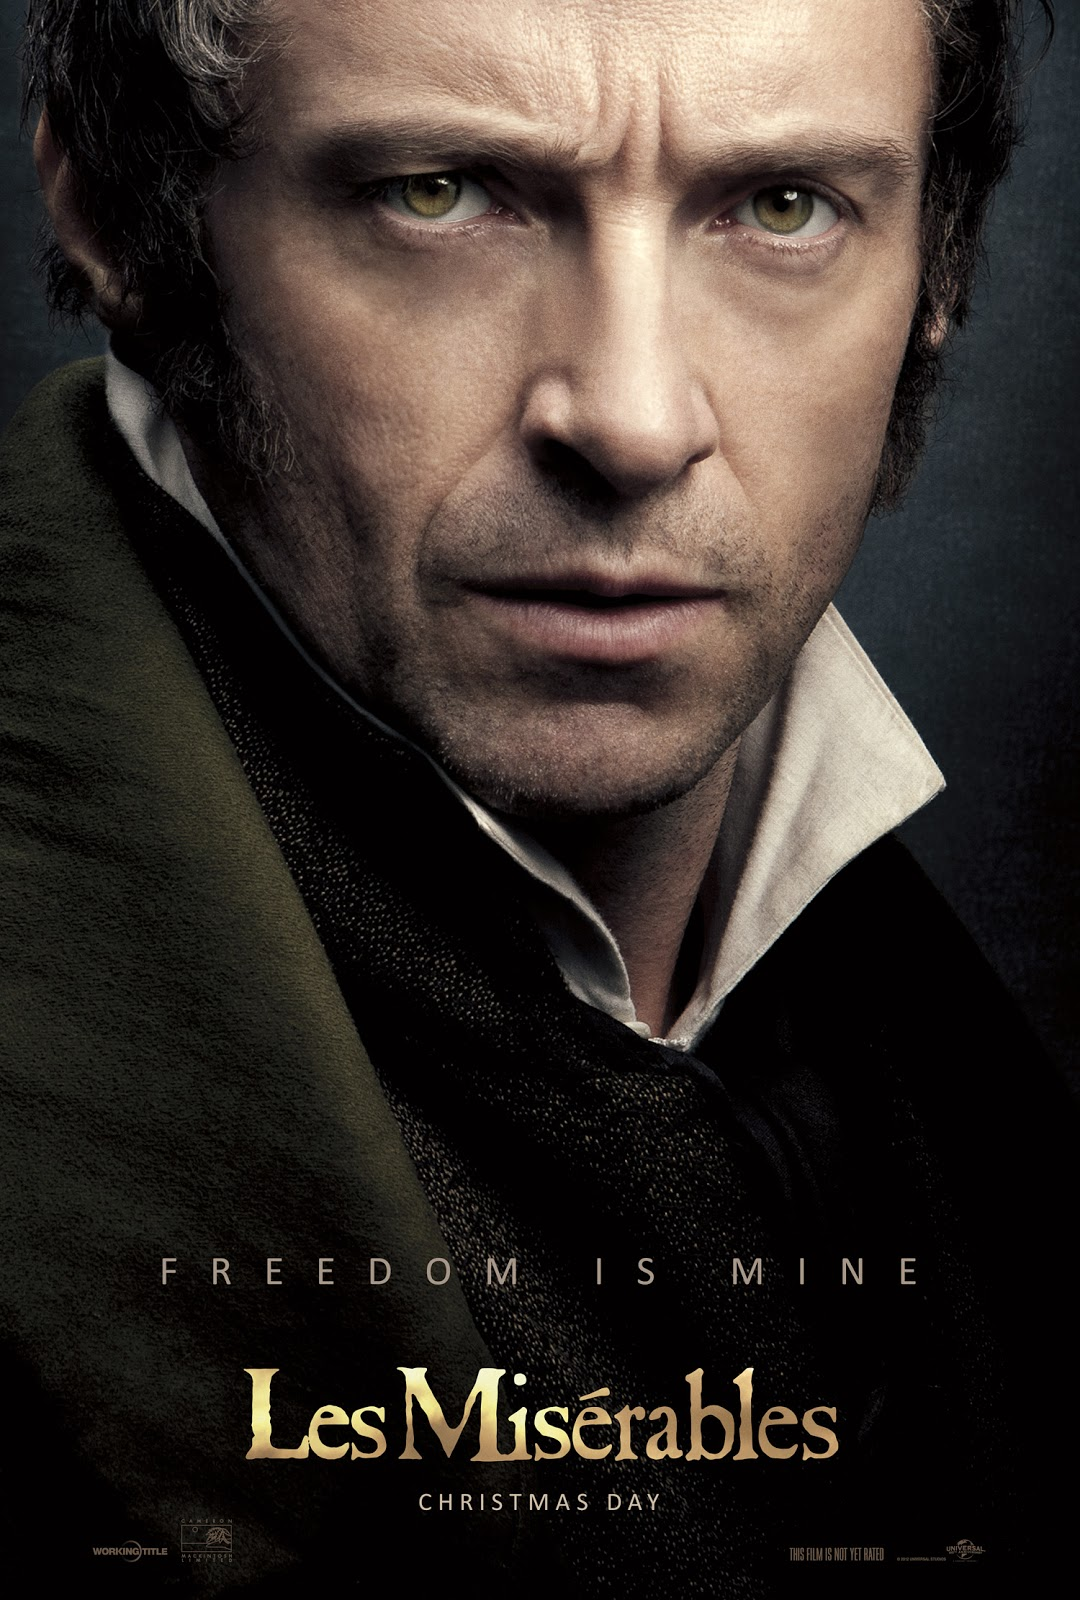 the three influence of jean valjean in les miserables Les misérables (french pronunciation: [le mizeʁabl(ə)]) is a french historical novel by victor hugo, first published in 1862, that is considered one of the greatest novels of the 19th century in the english-speaking world, the novel is usually referred to by its original french title however, several alternatives have been used, including the miserables, the wretched, the miserable ones.